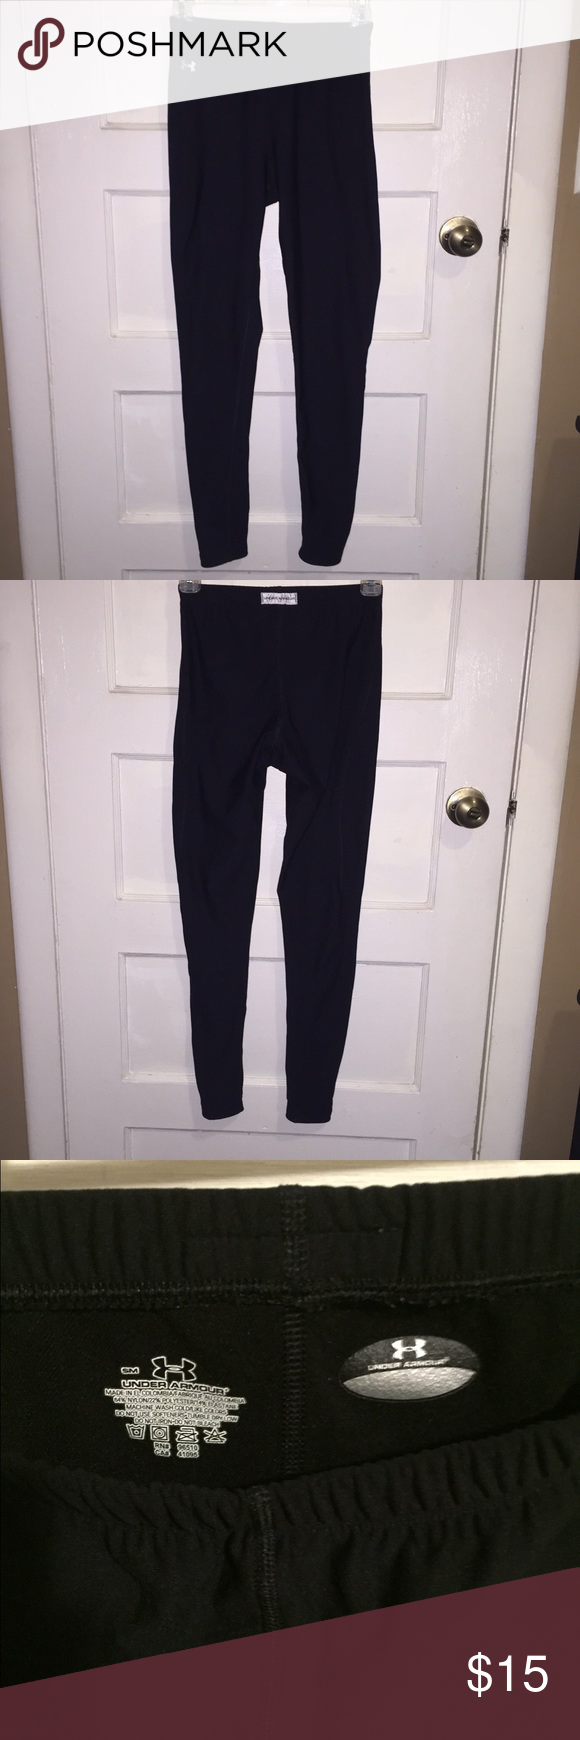 Under Armour spandex leggings. Great for laying Size small Under Armour leggings that work great for laying even under jeans. Under Armour Pants Leggings